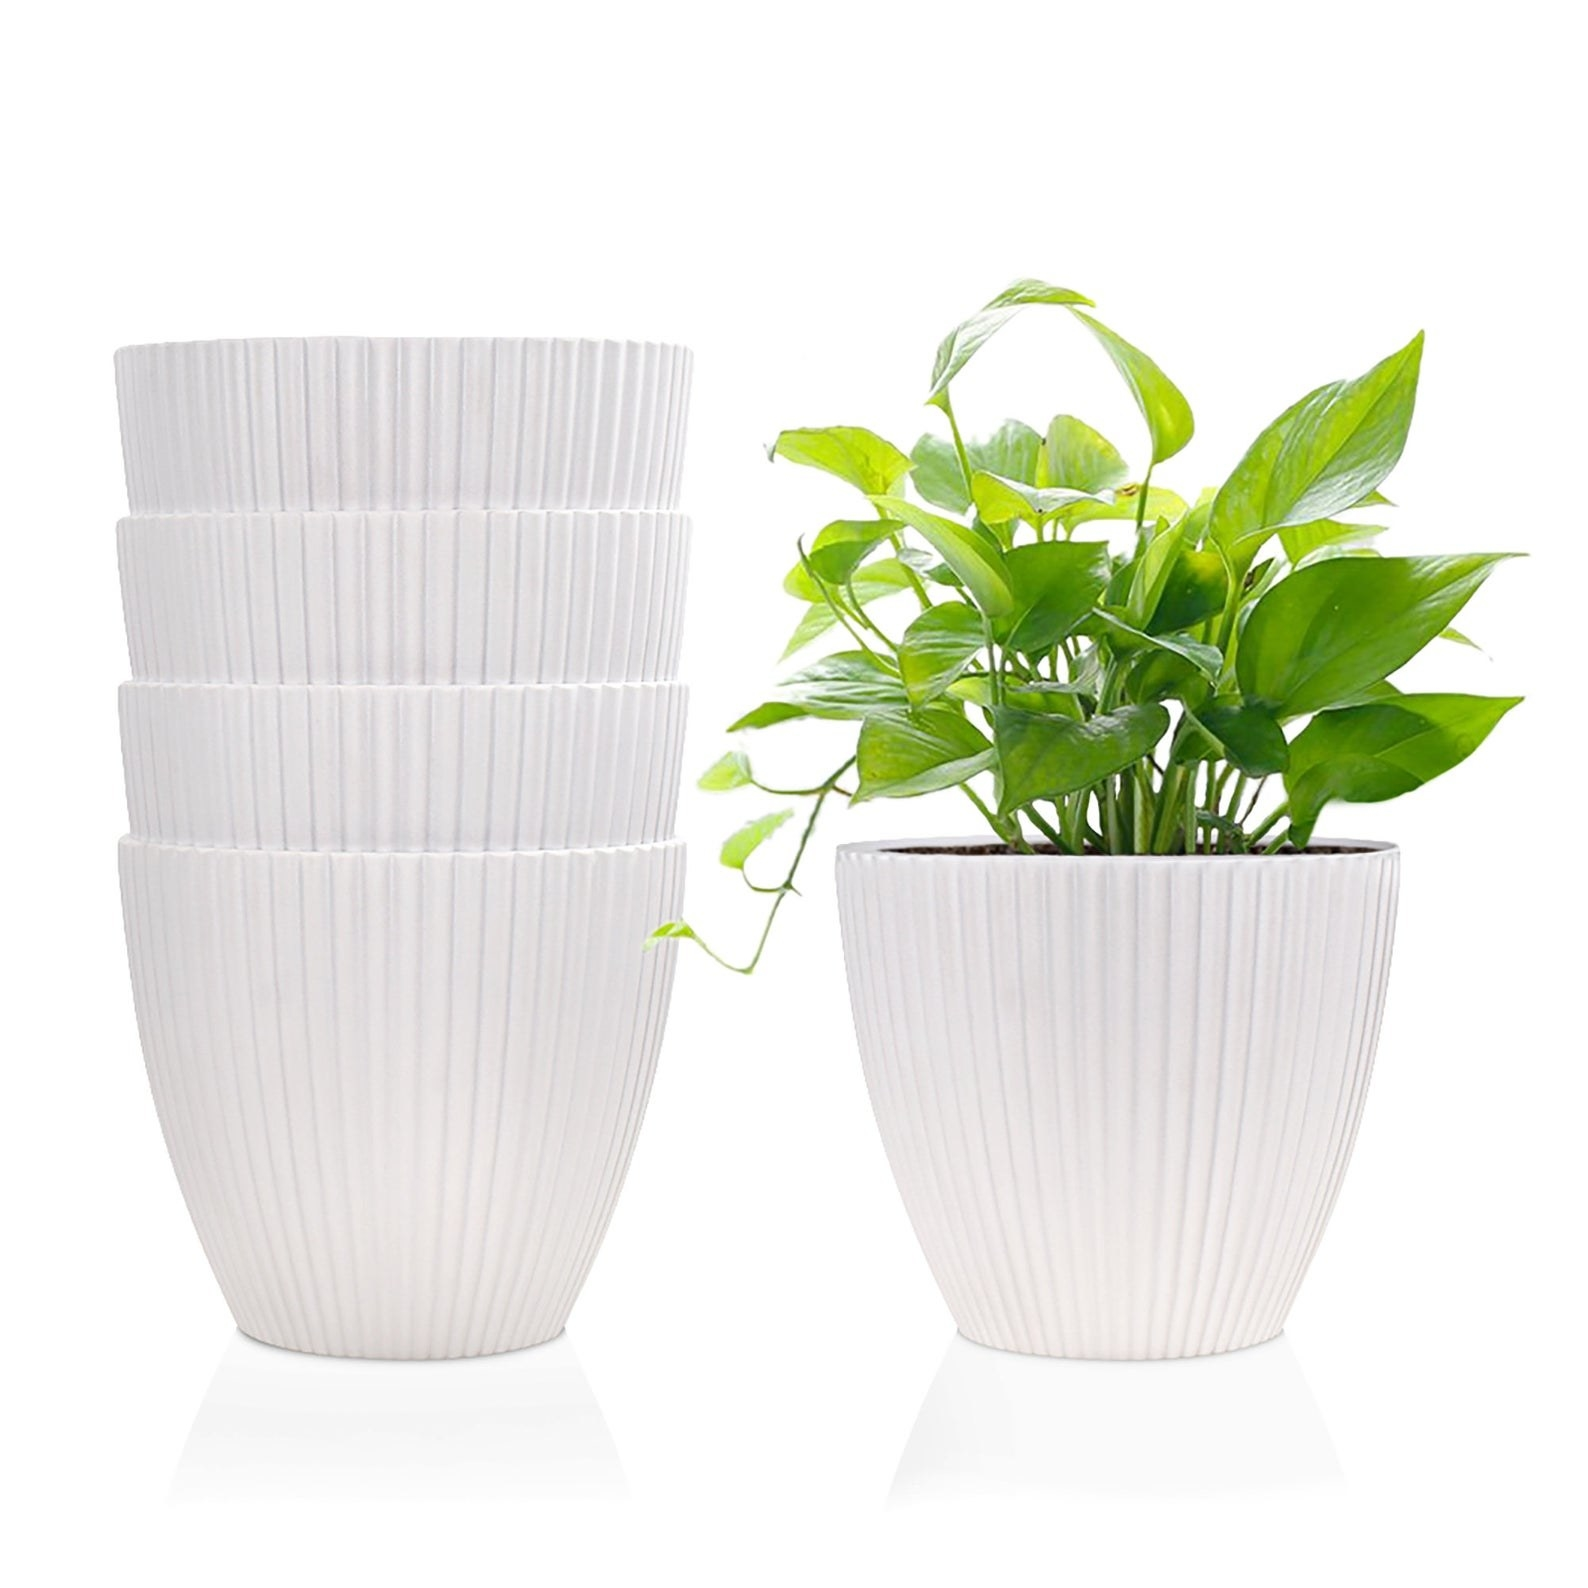 The small white plant pots